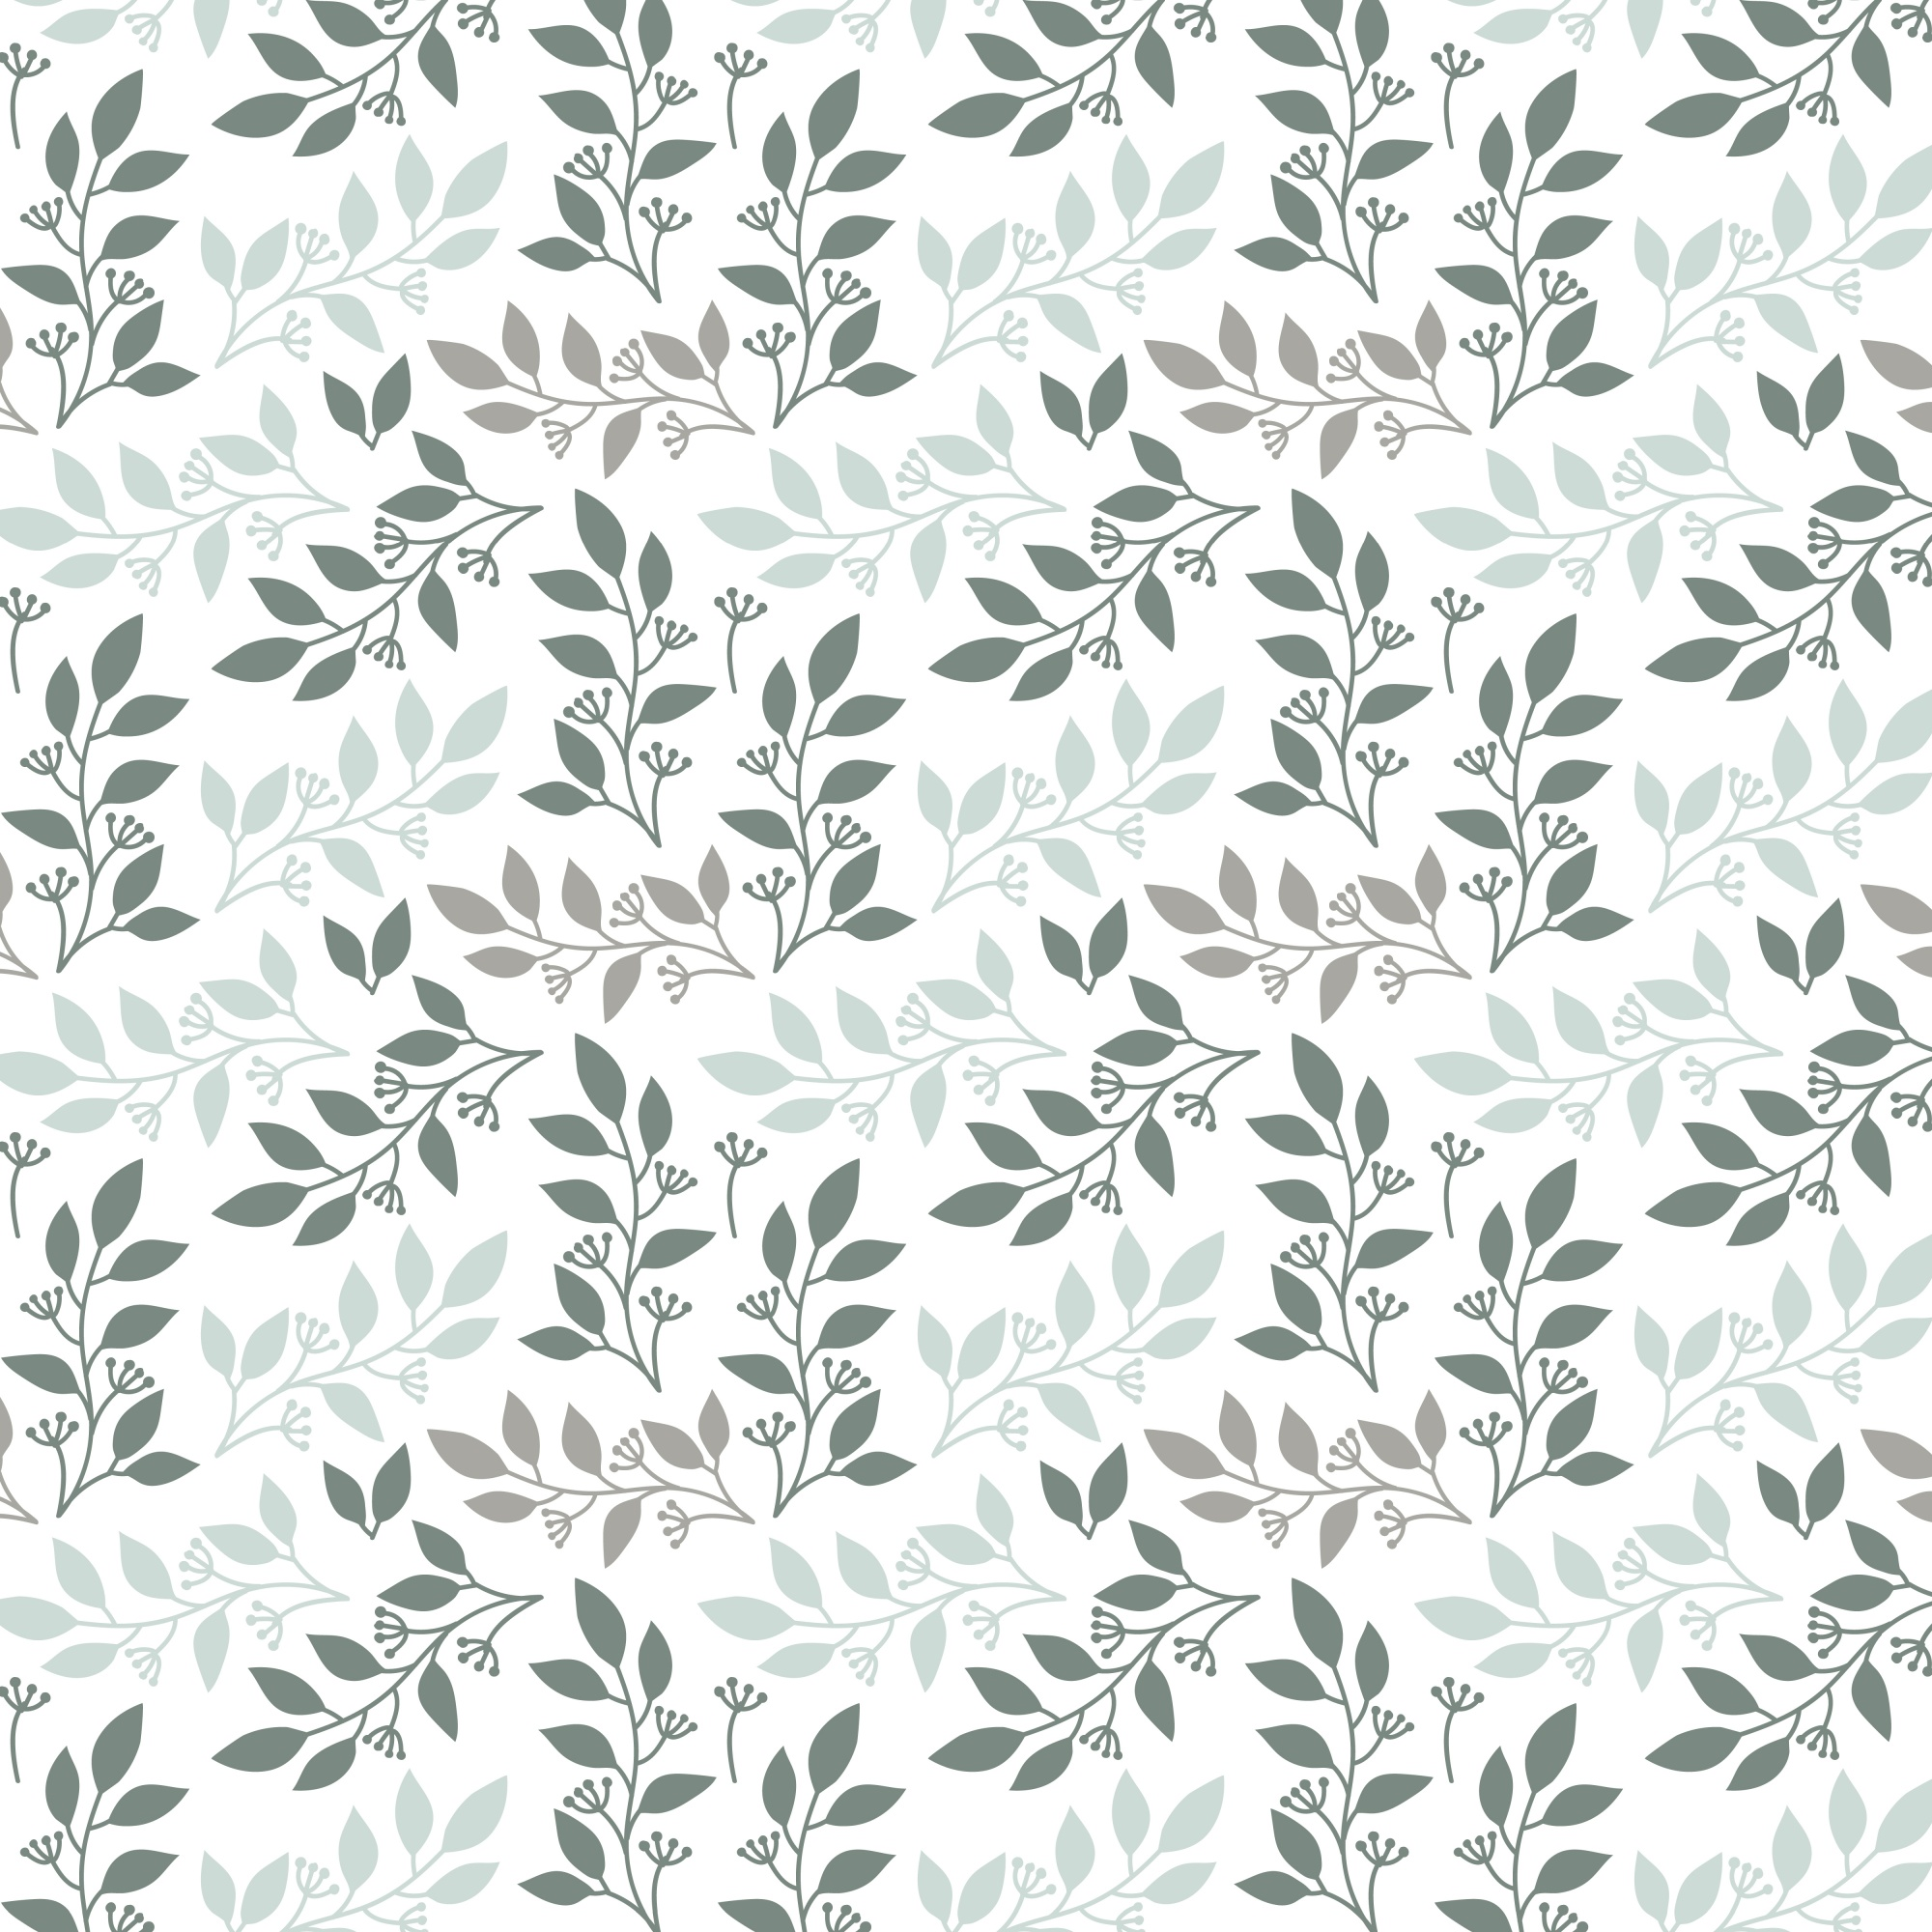 Leaves pattern background